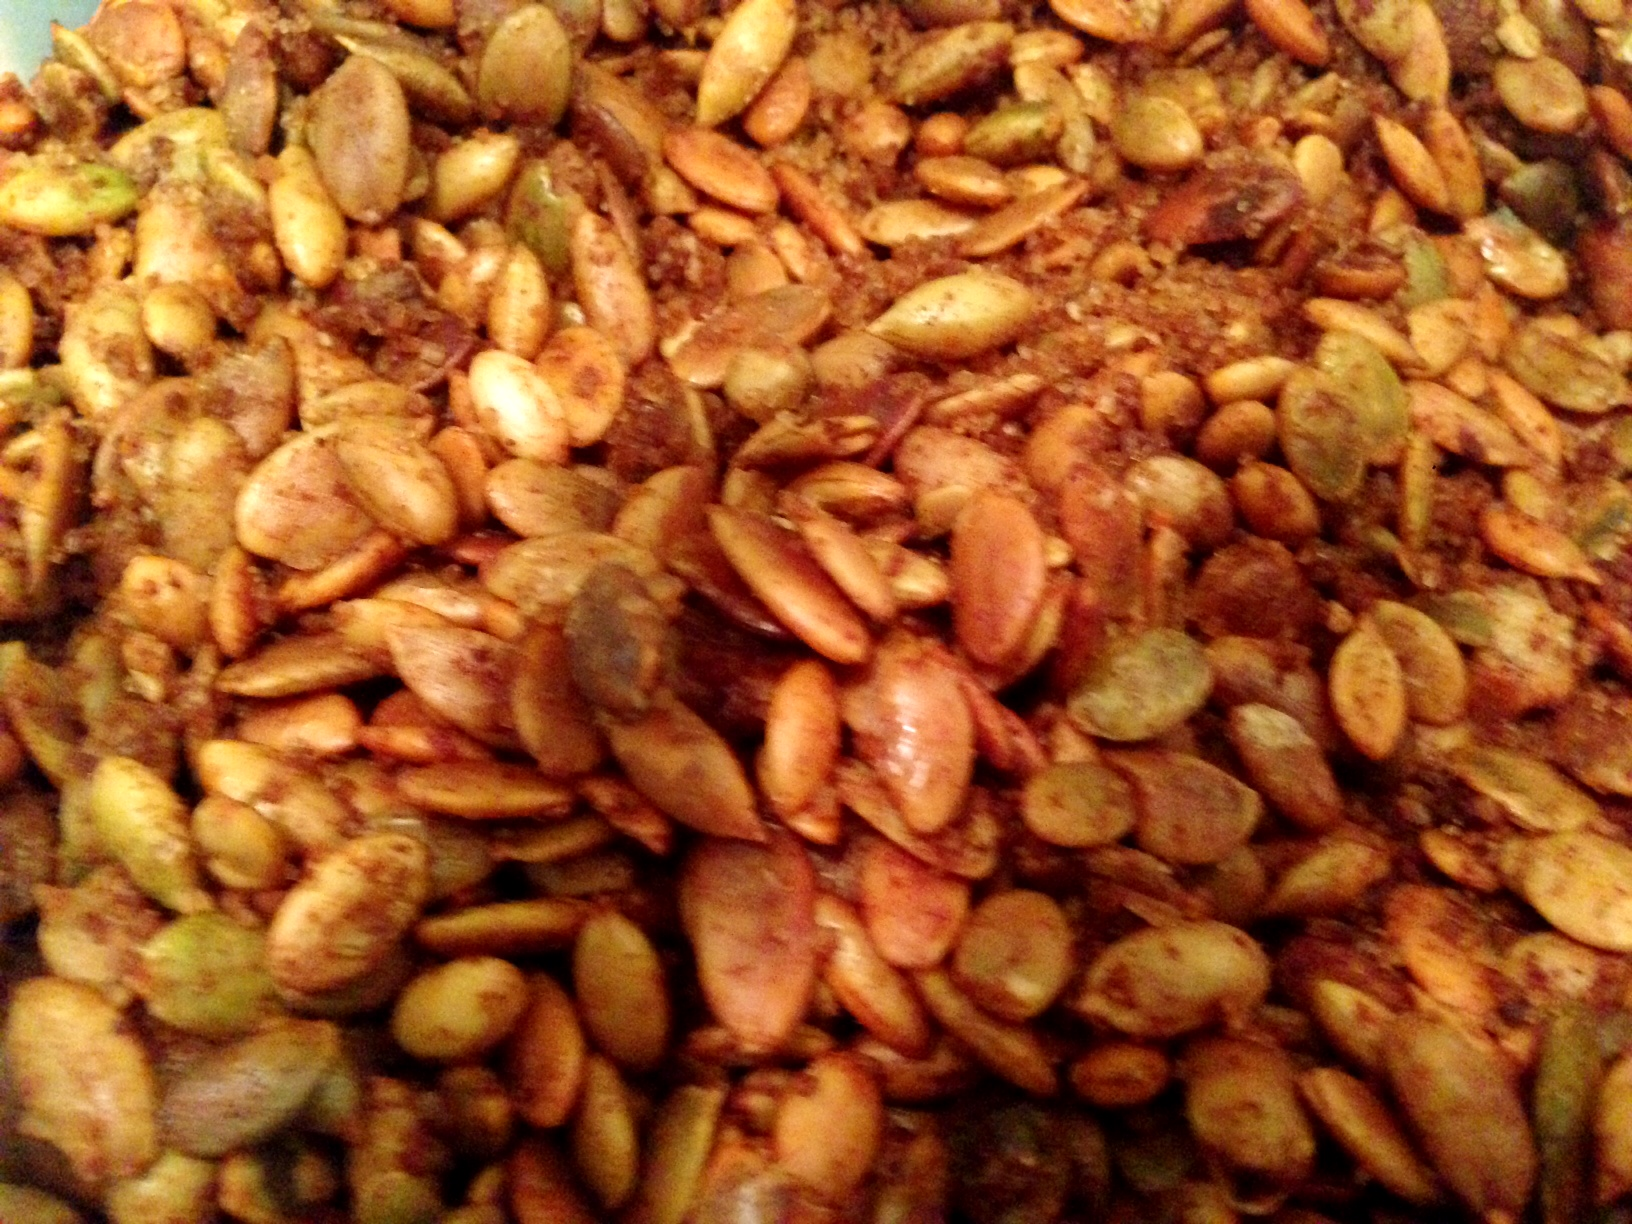 Fresh baked pumpkin seeds, spiced and tasty...